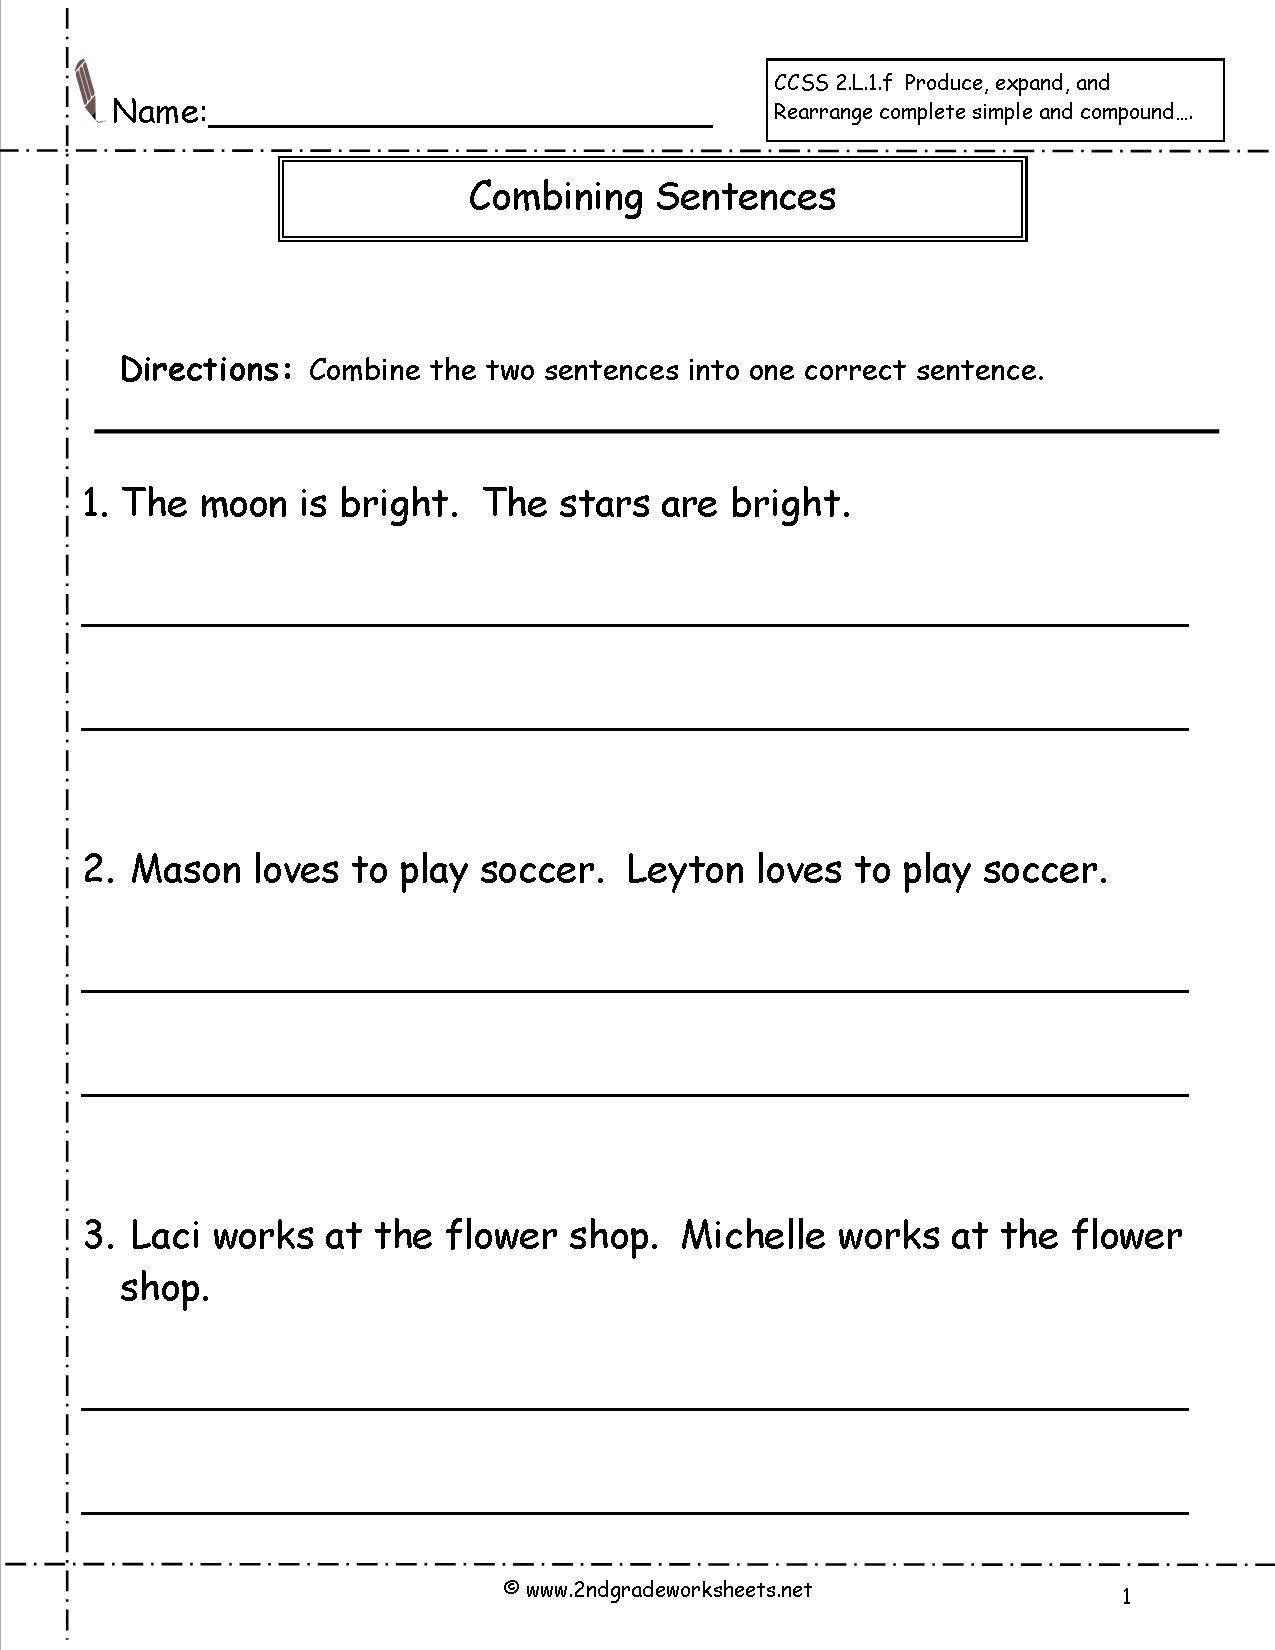 Combining Sentences Worksheet 5th Grade Bining Sentences Worksheet